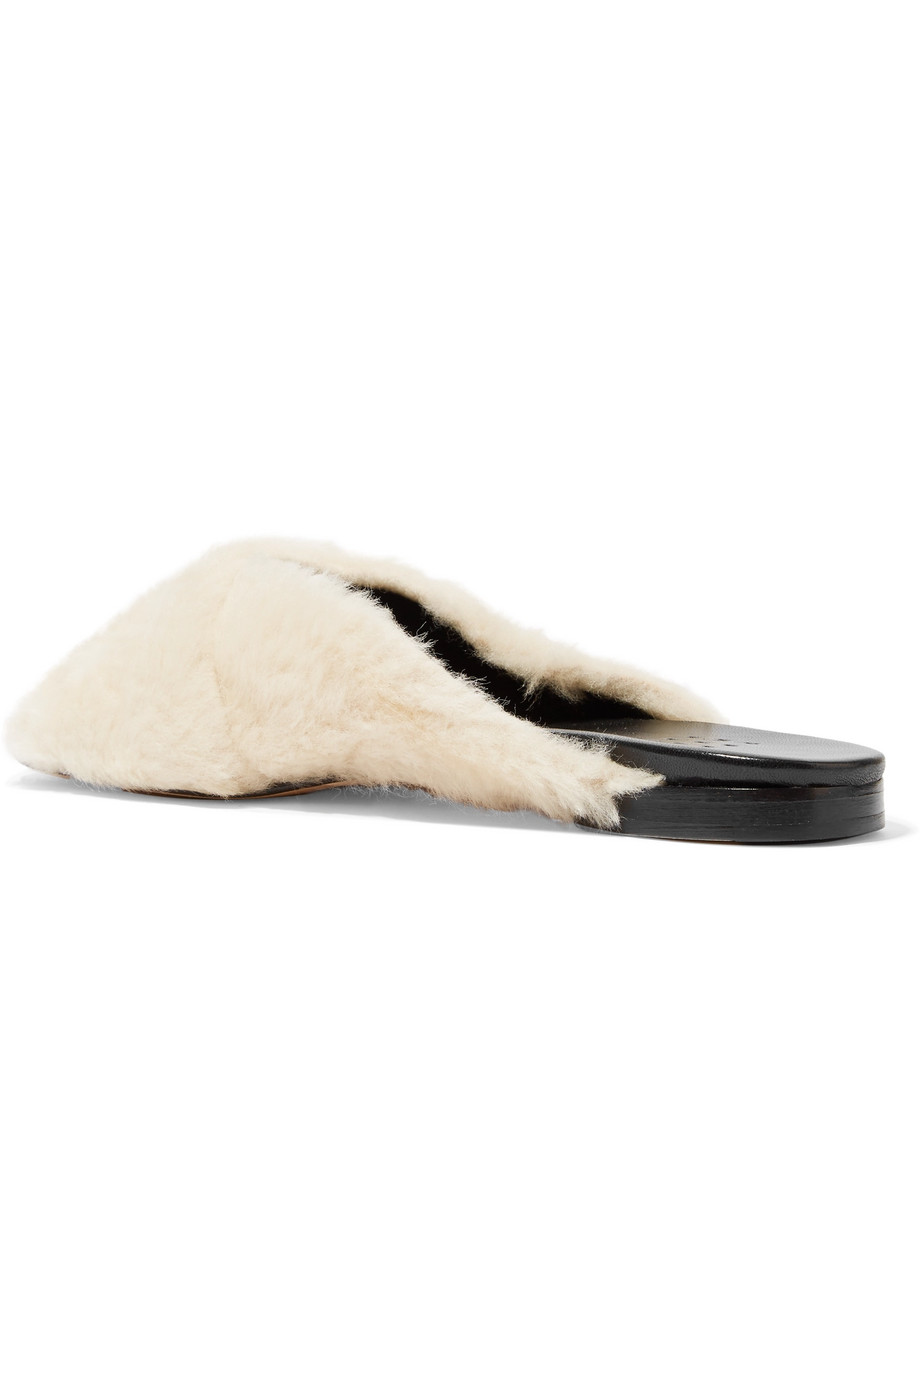 Leather slippers Trademark buy Leather slippers Trademark internet shop